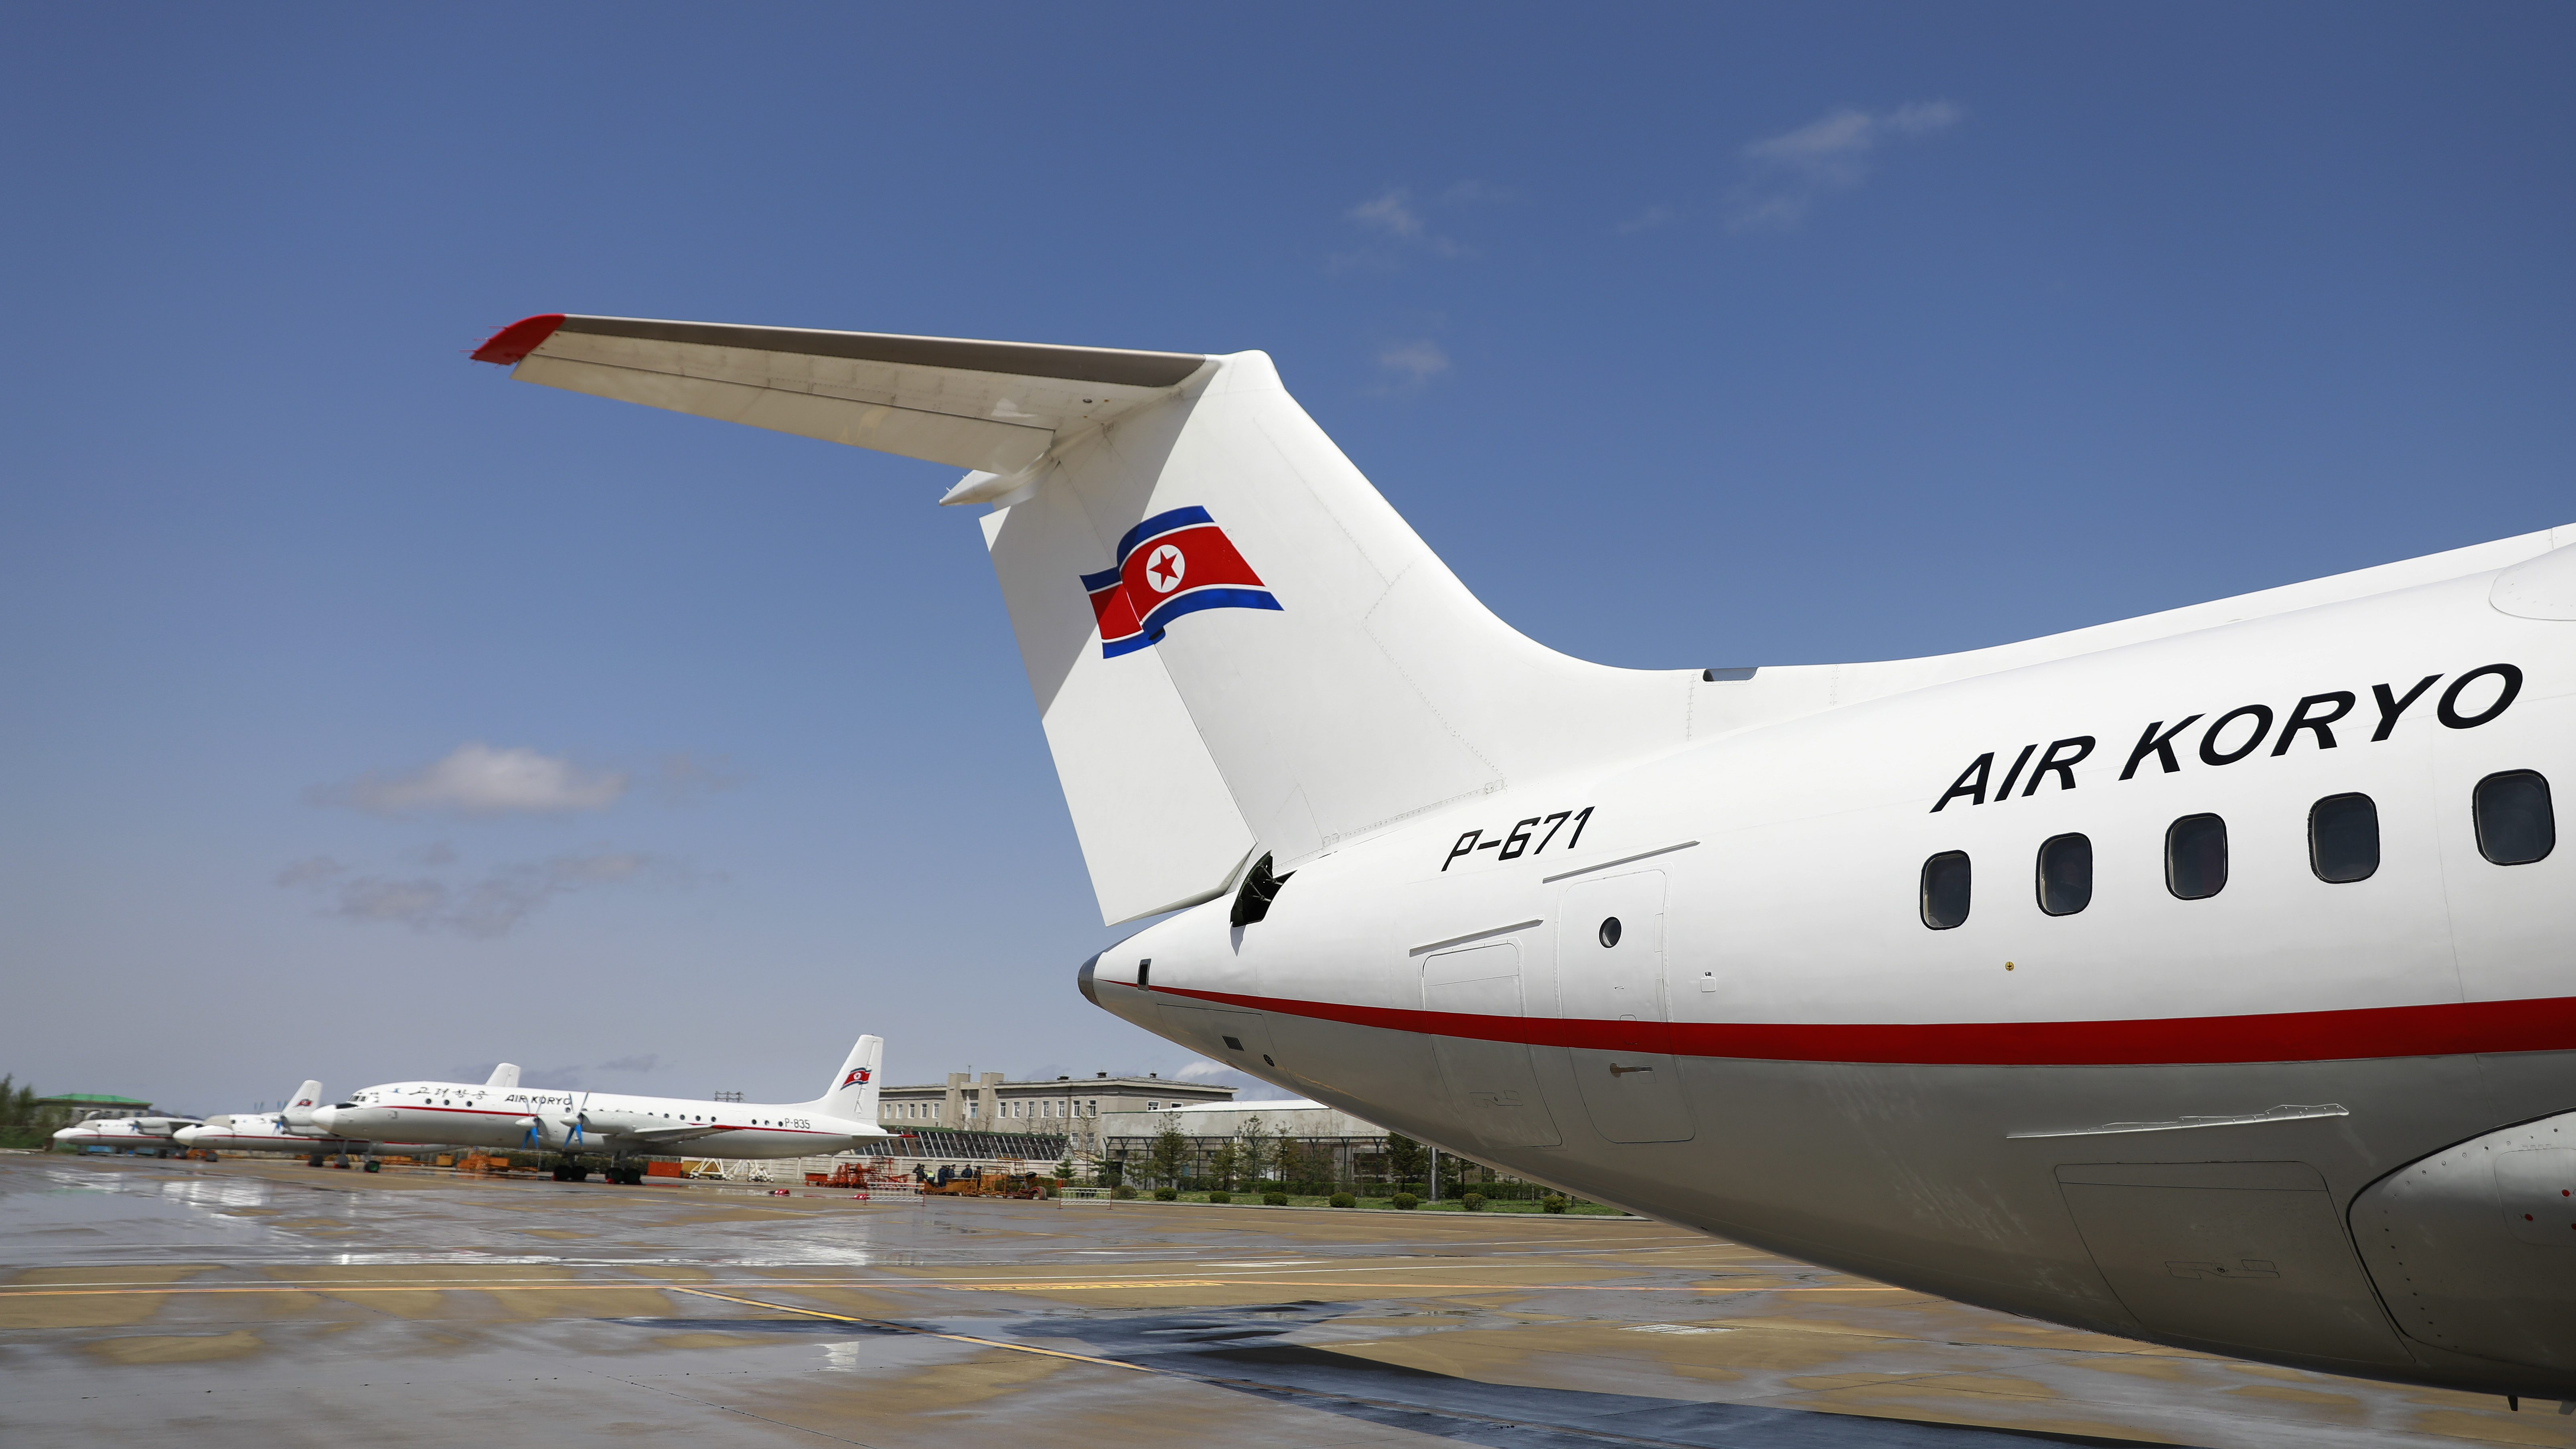 Air Koryo planes on the airport tarmac in Pyongyang, North Korea, 18 April 2017 (issued 25 April 2017). According to media reports on 25 April 2017, Air China is to resume service between Beijing and Pyongyang on 05 May 2017, amid growing speculations that the US may push for a global ban on Air Koryo, North Korea's state-owned national flag carrier airline.